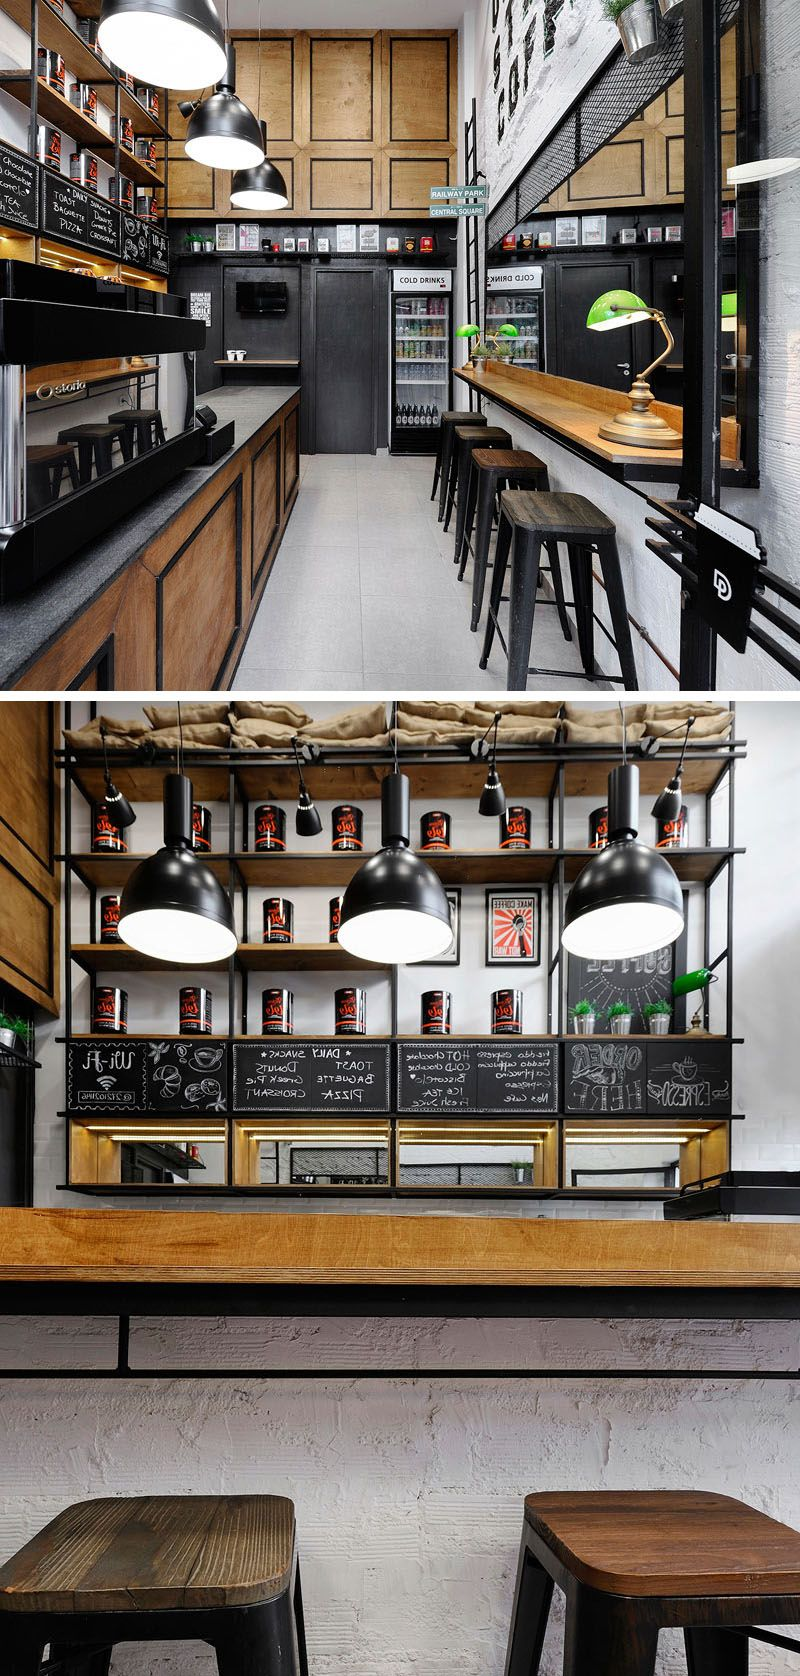 Andreas Petropoulos Has Designed A Small Takeaway Coffee Bar In Greece